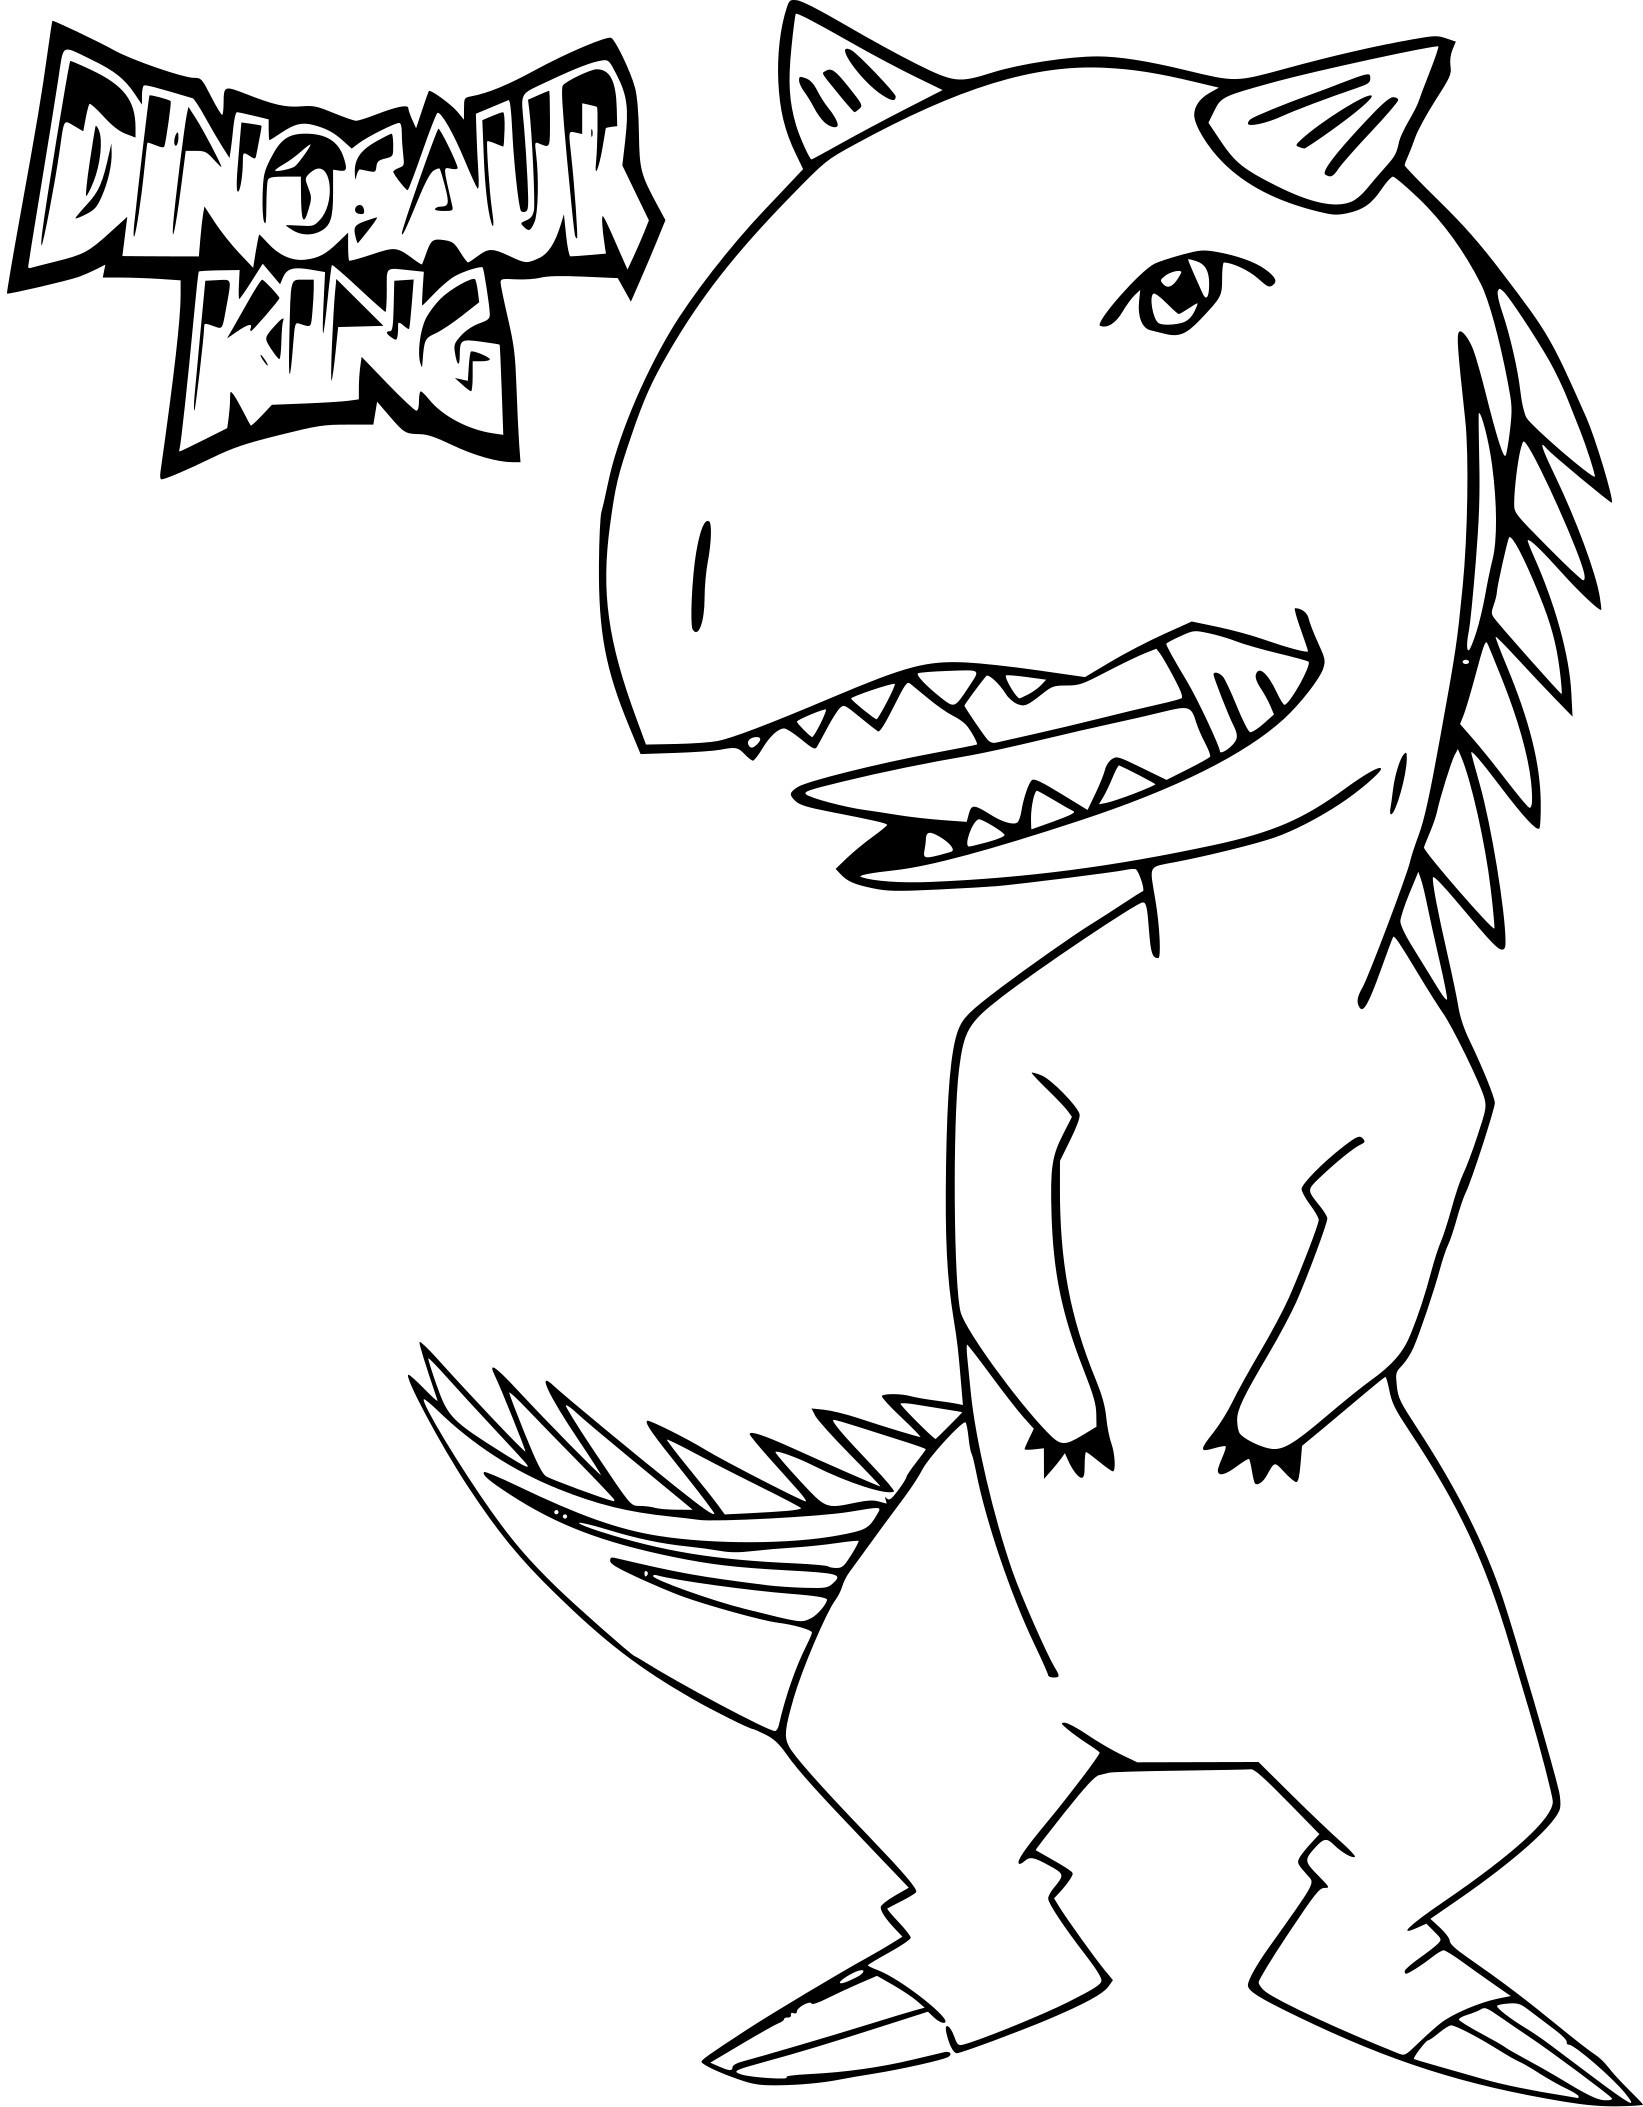 Coloriage dinosaure king dessin imprimer sur coloriages info - Top coloriage dinosaures ...